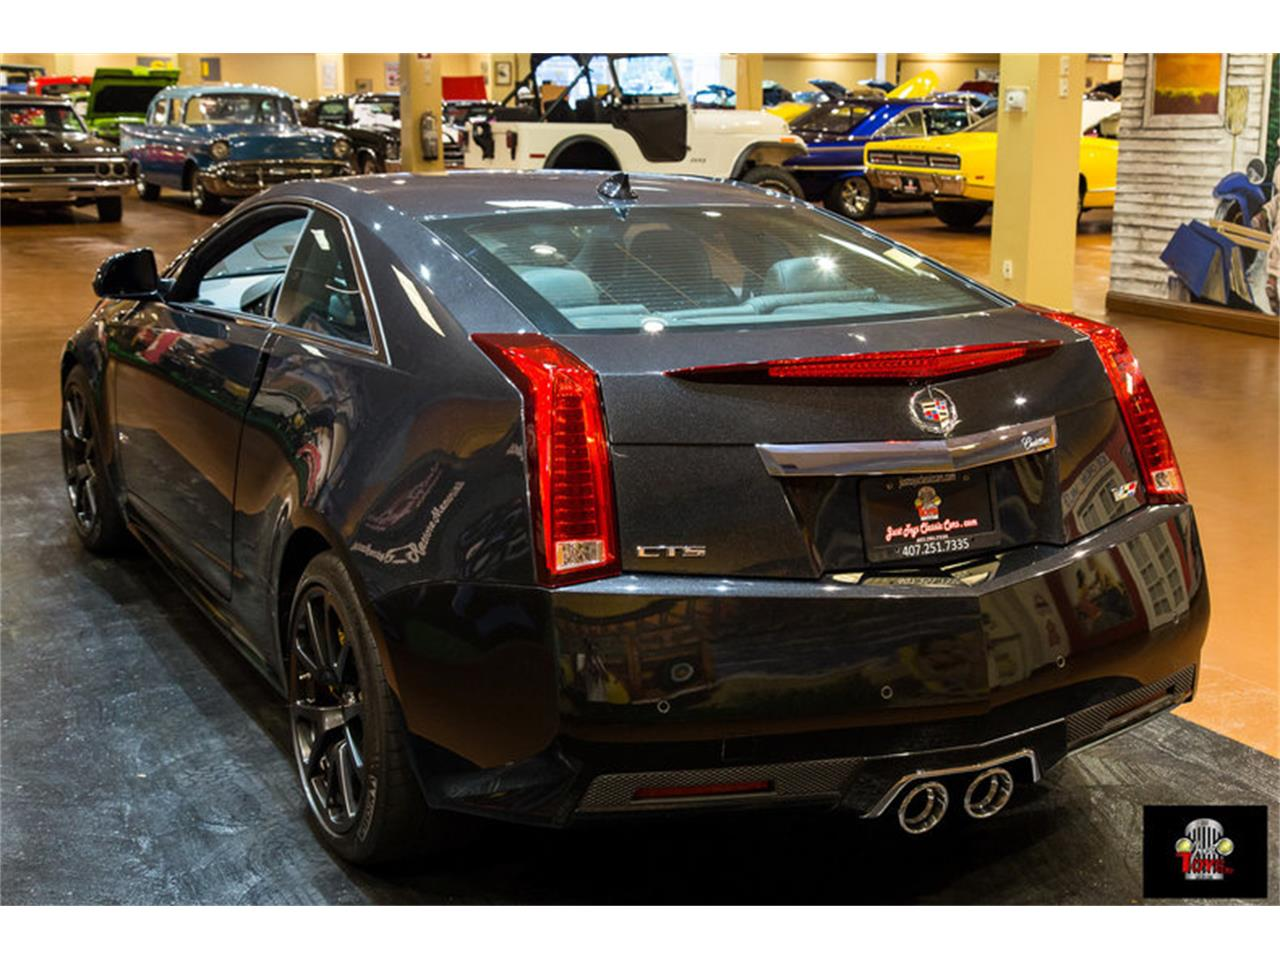 cts cadillac classic florida orlando cc classiccars cars financing inspection insurance transport